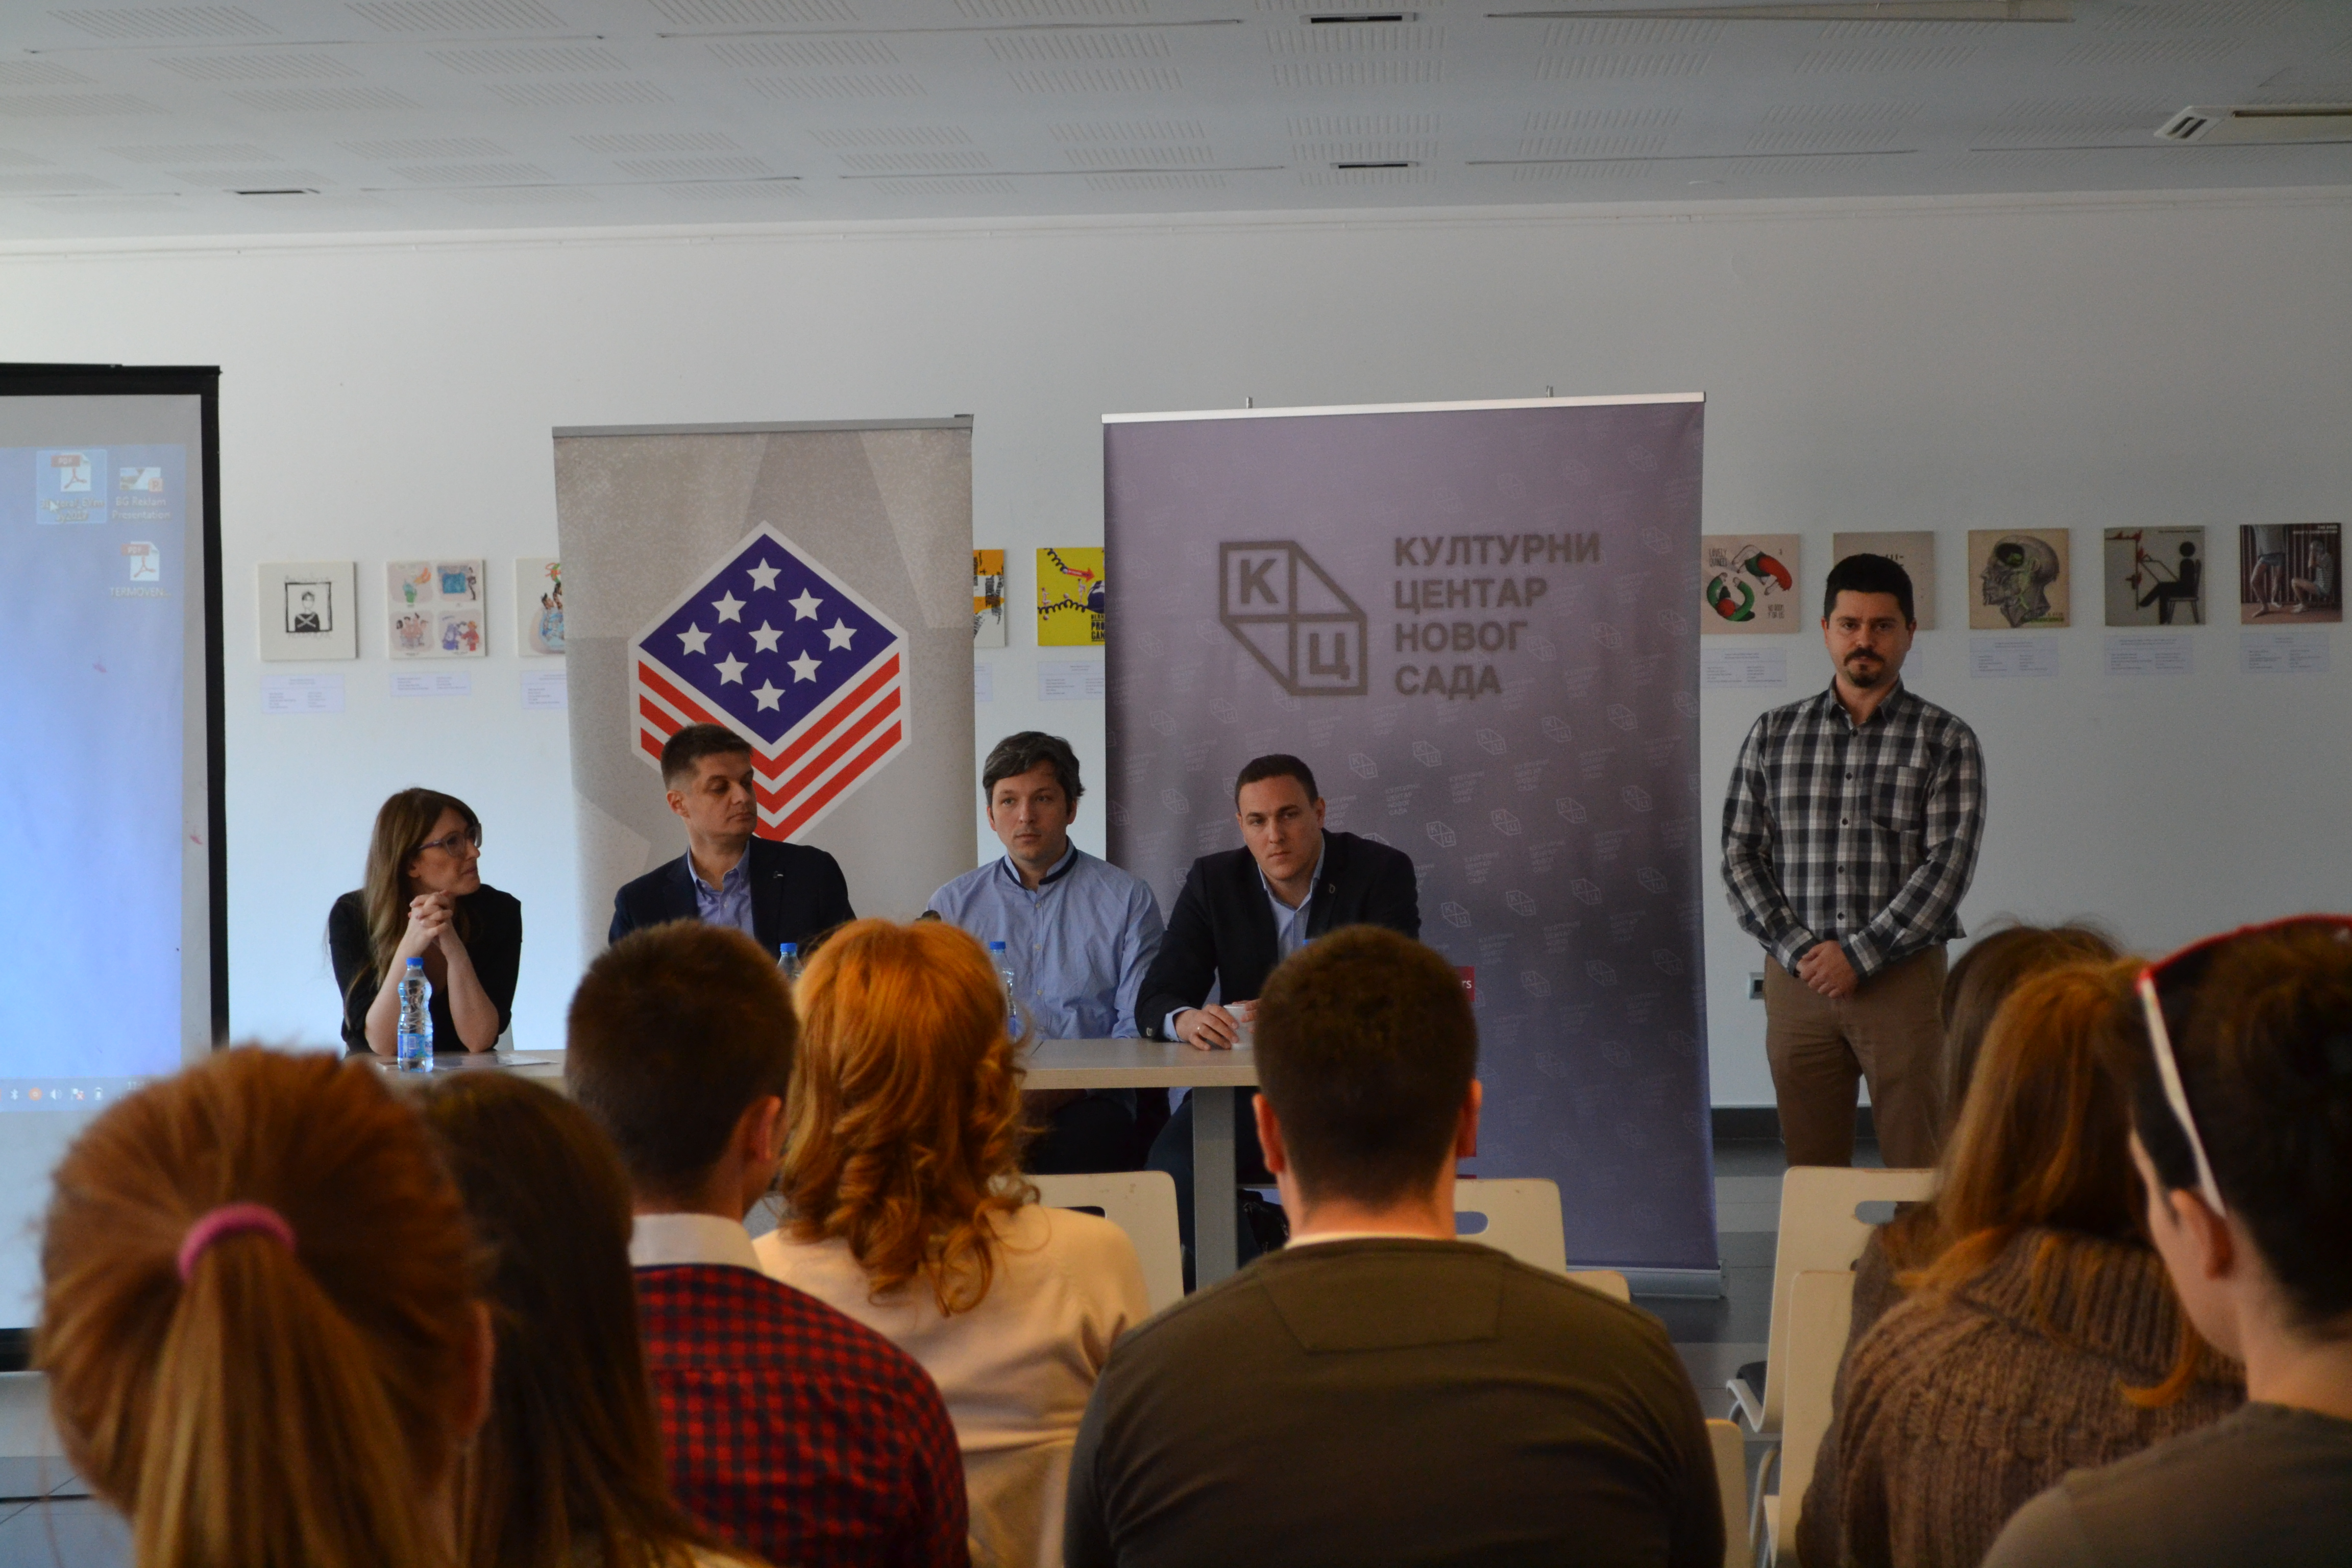 LECTURE ON ENTREPRENEURSHIP IN NOVI SAD